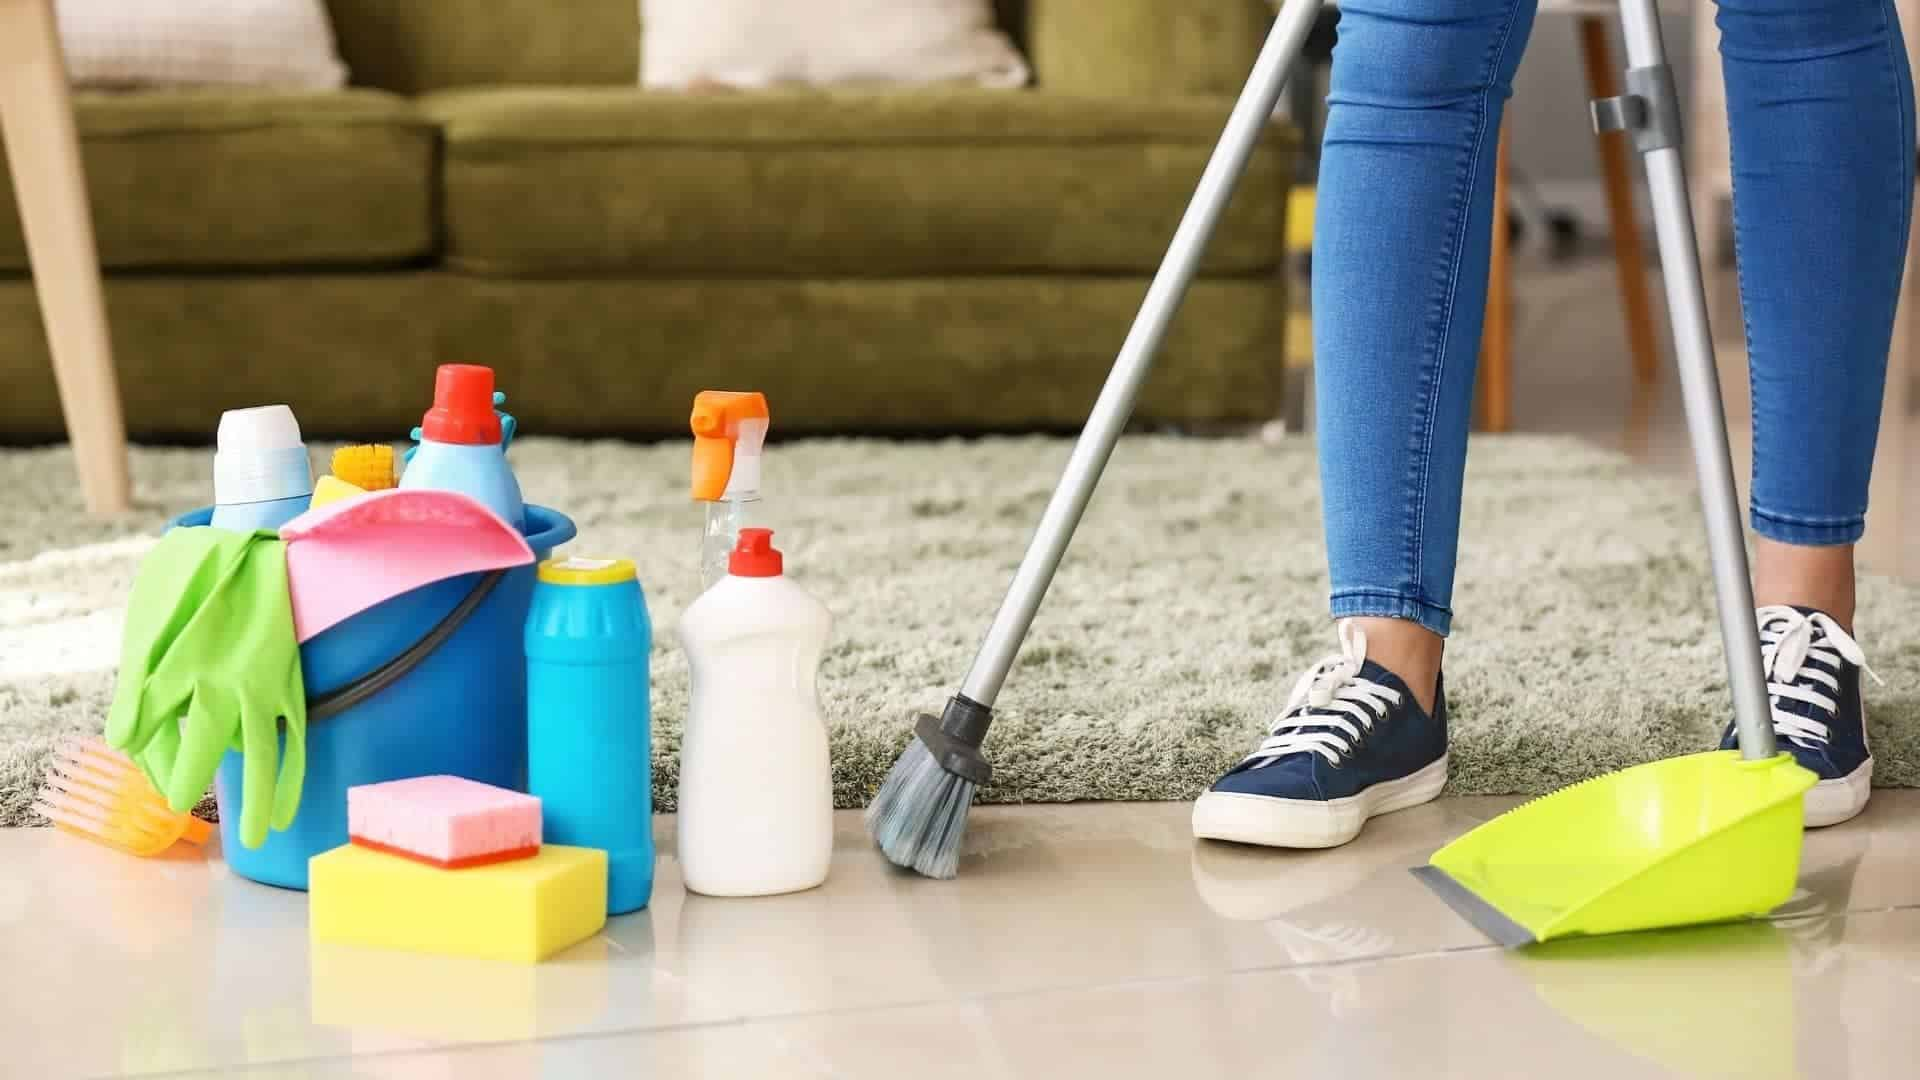 How To Remove Paint From Floor Tiles